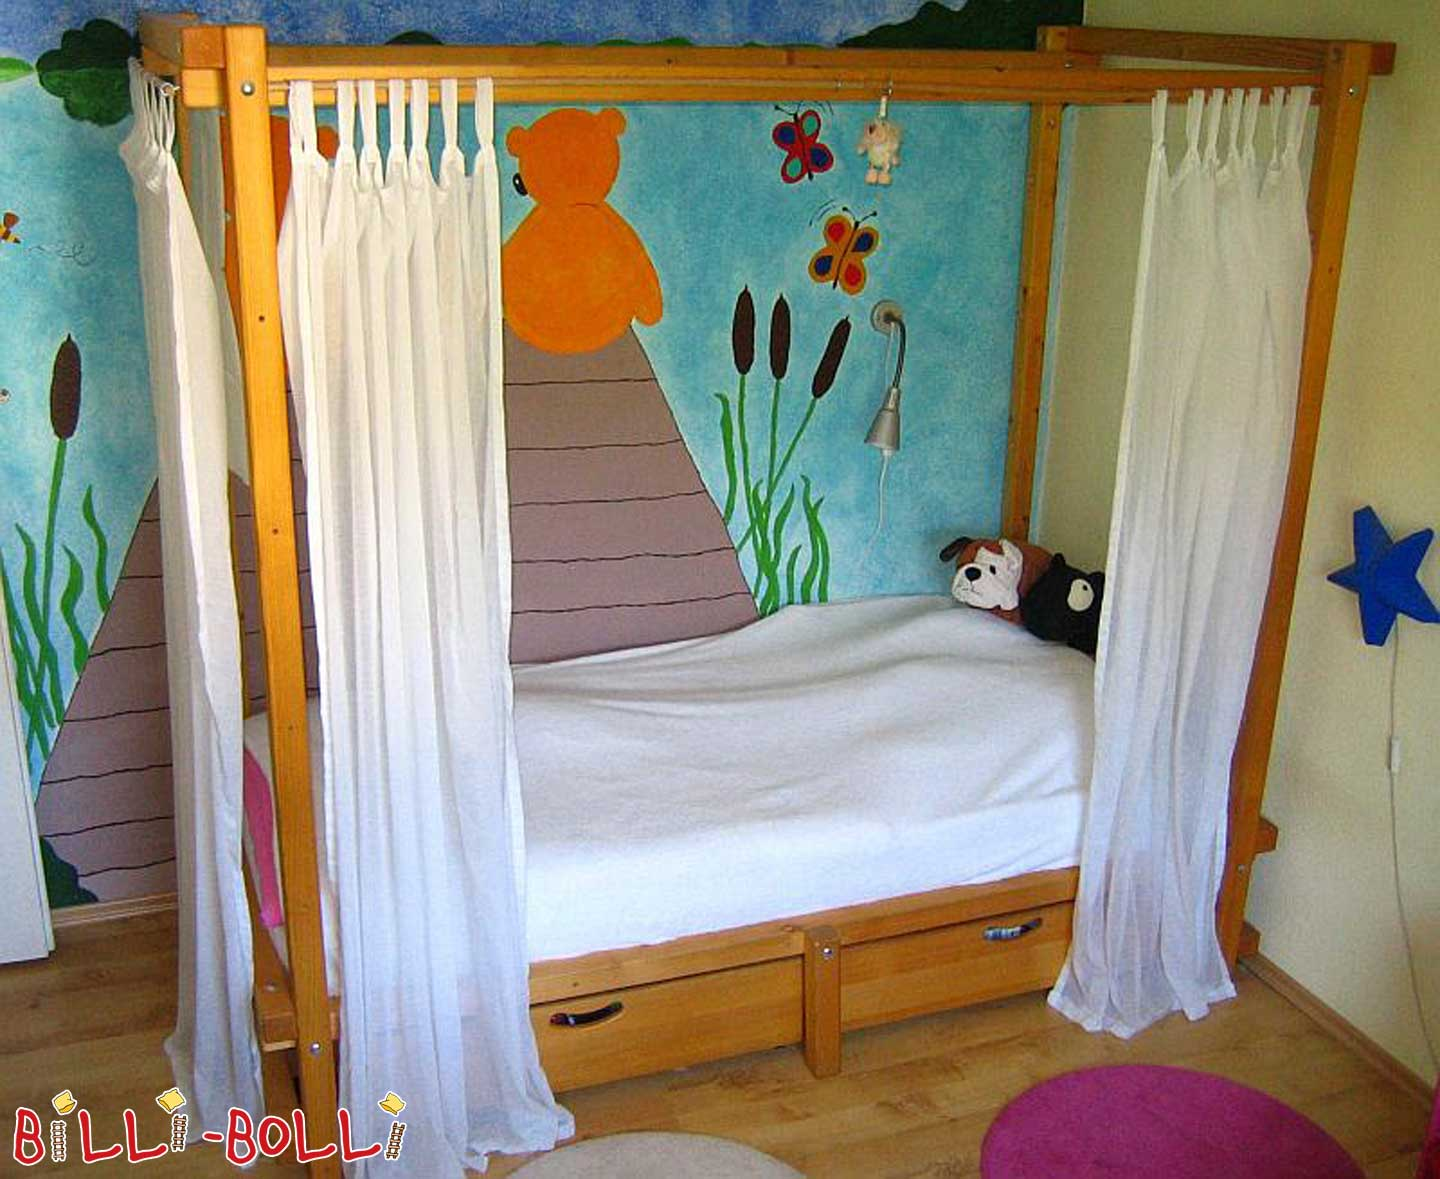 Billi-Bolli Four-poster bed (second hand kids' bed)